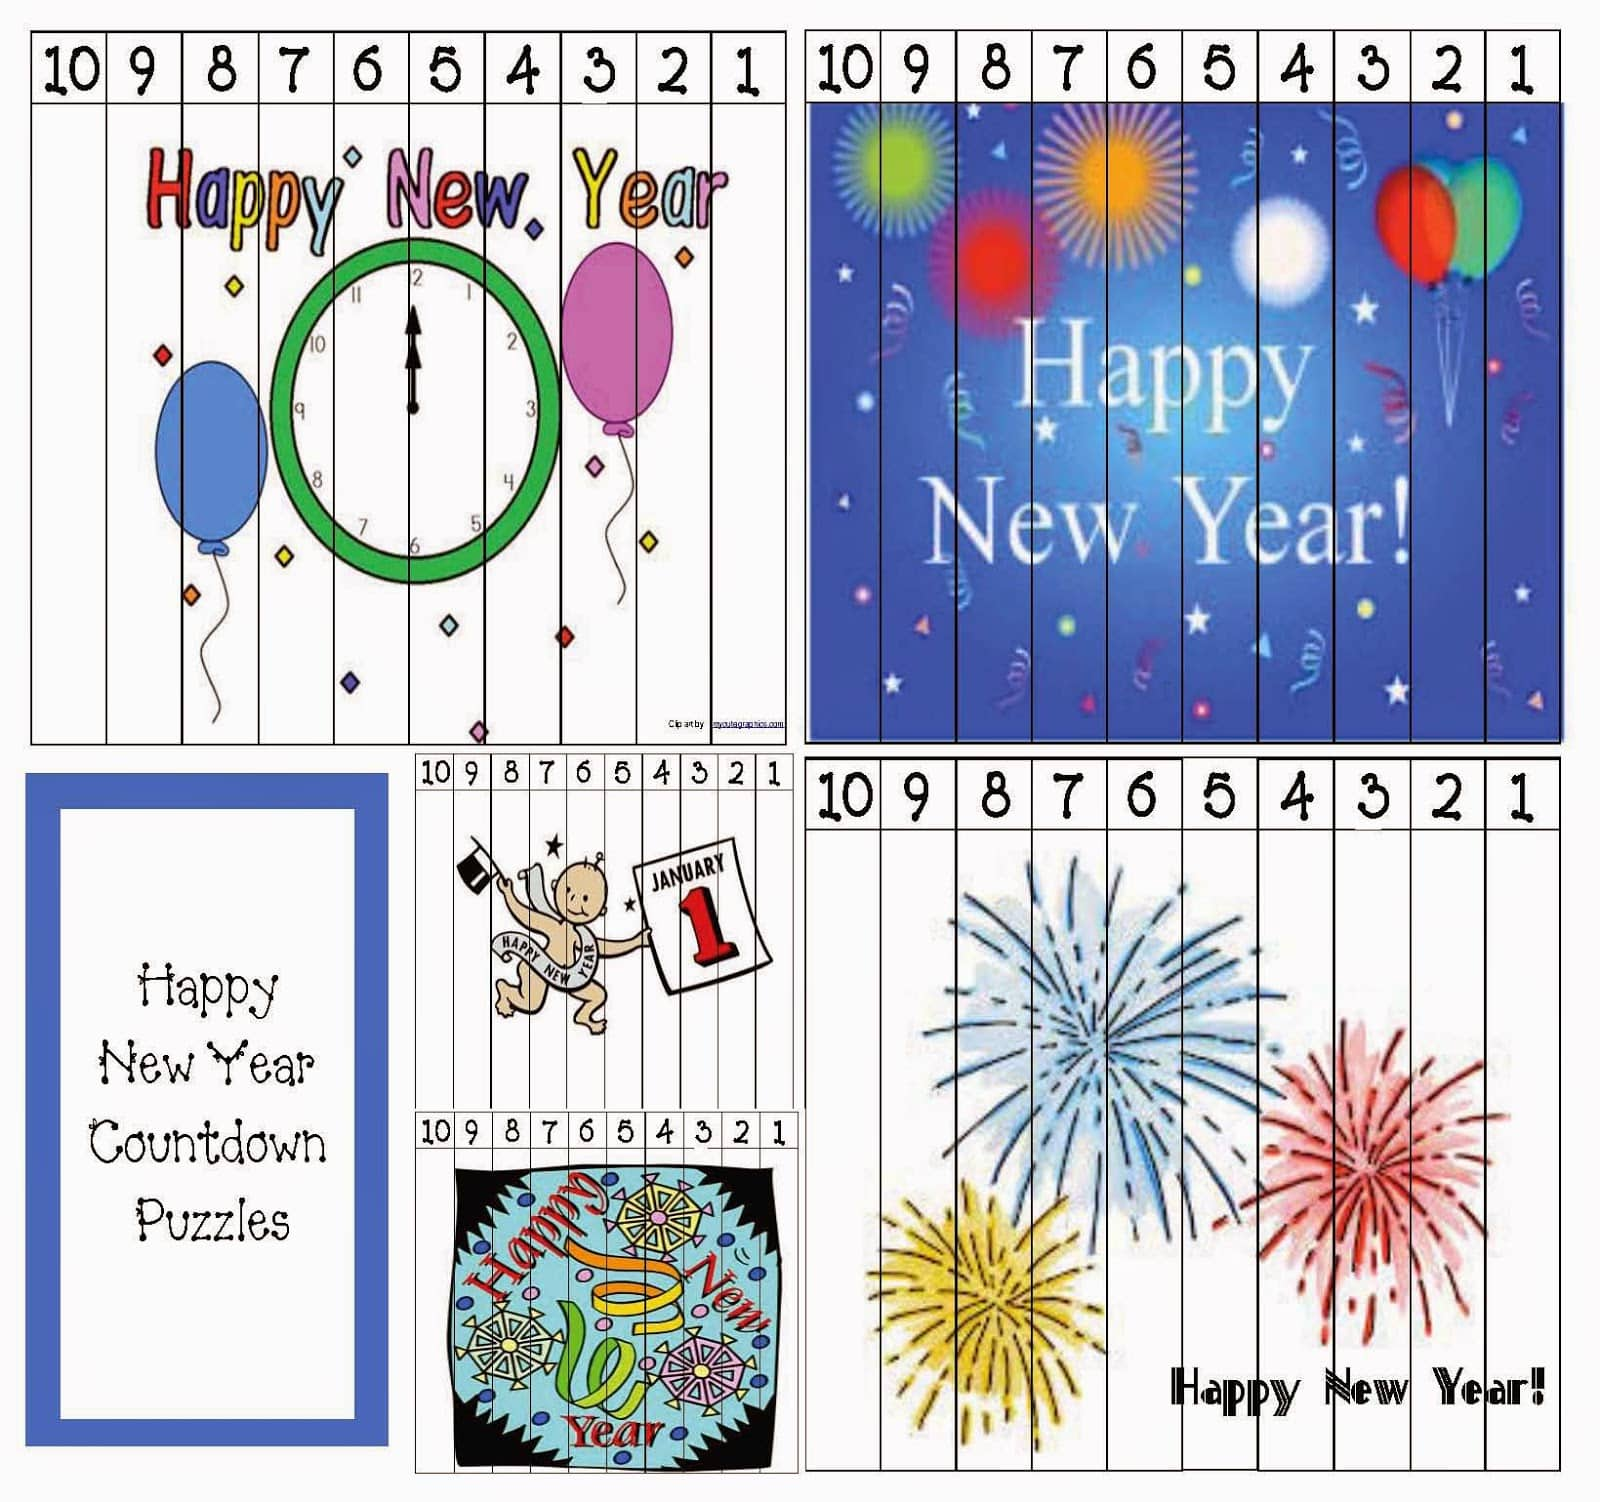 Happy New Year Countdown Puzzles